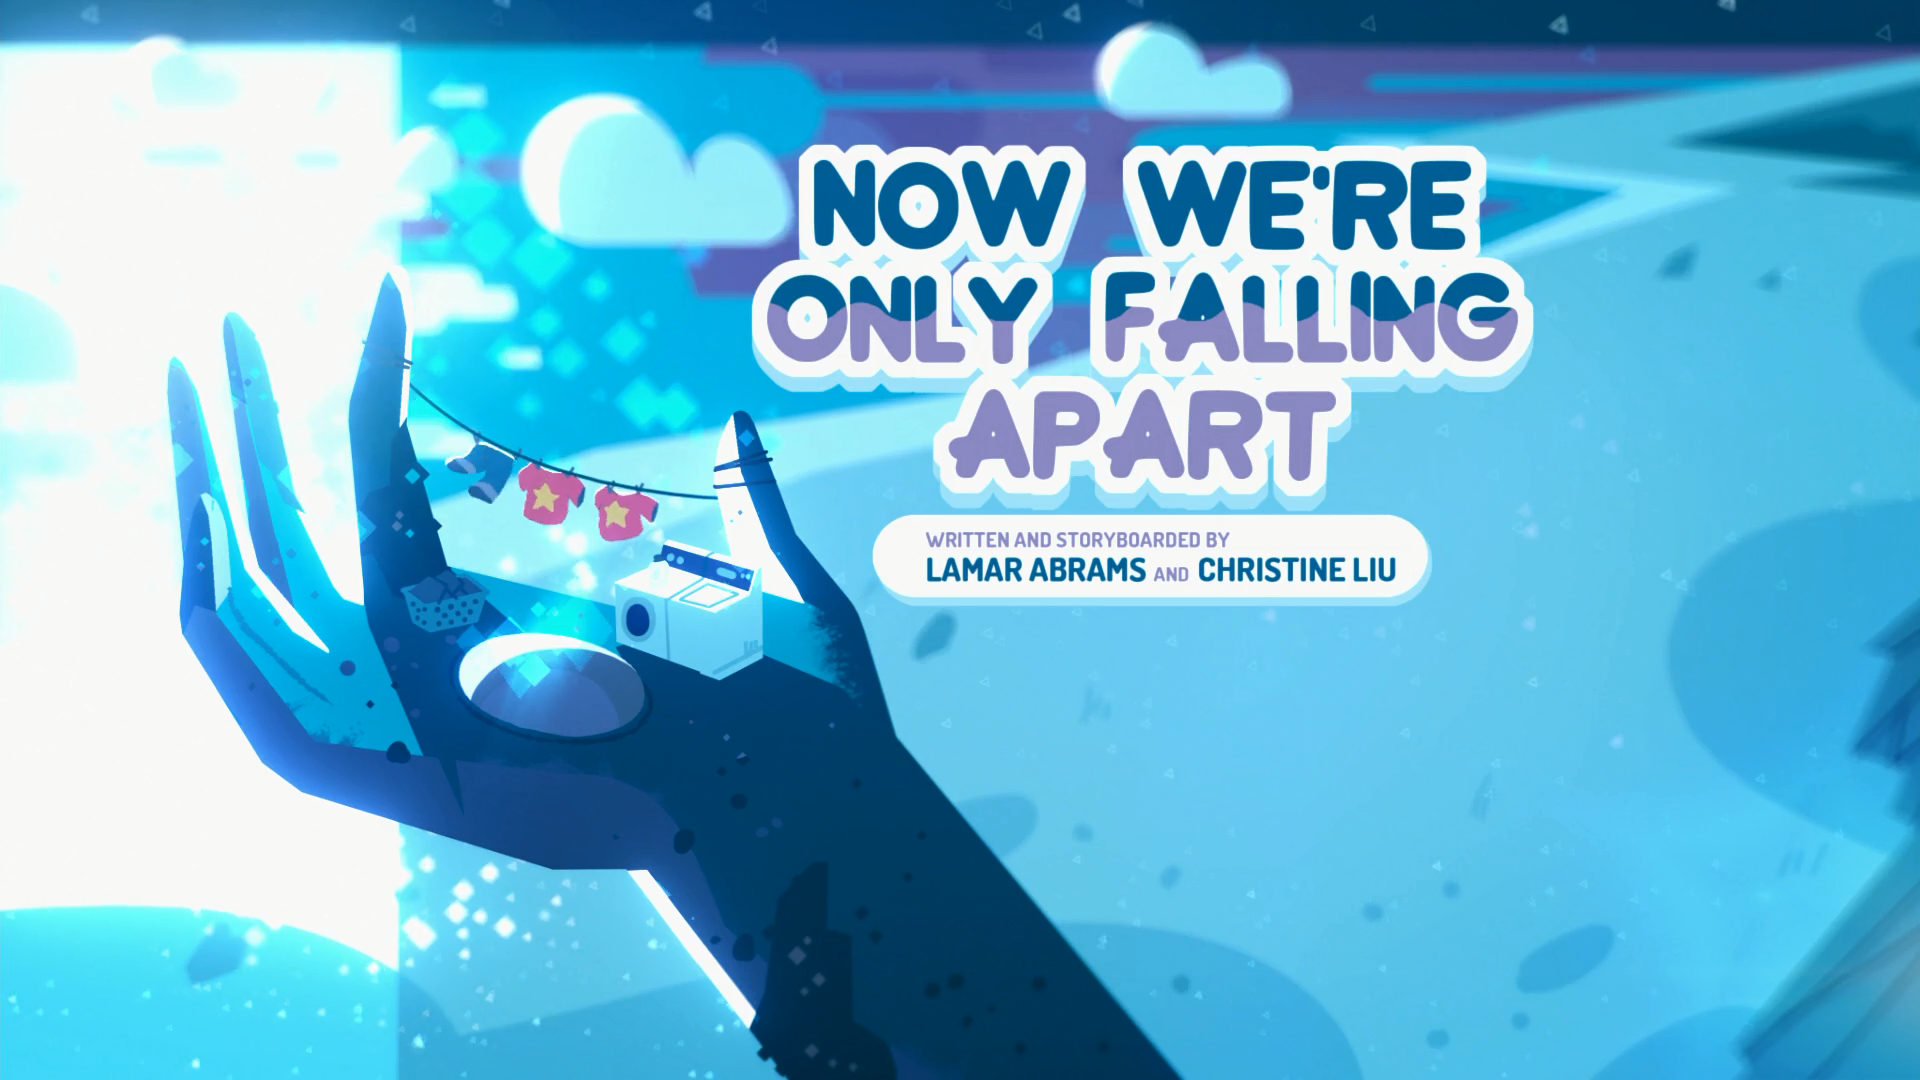 Now We're Only Falling Apart/Gallery